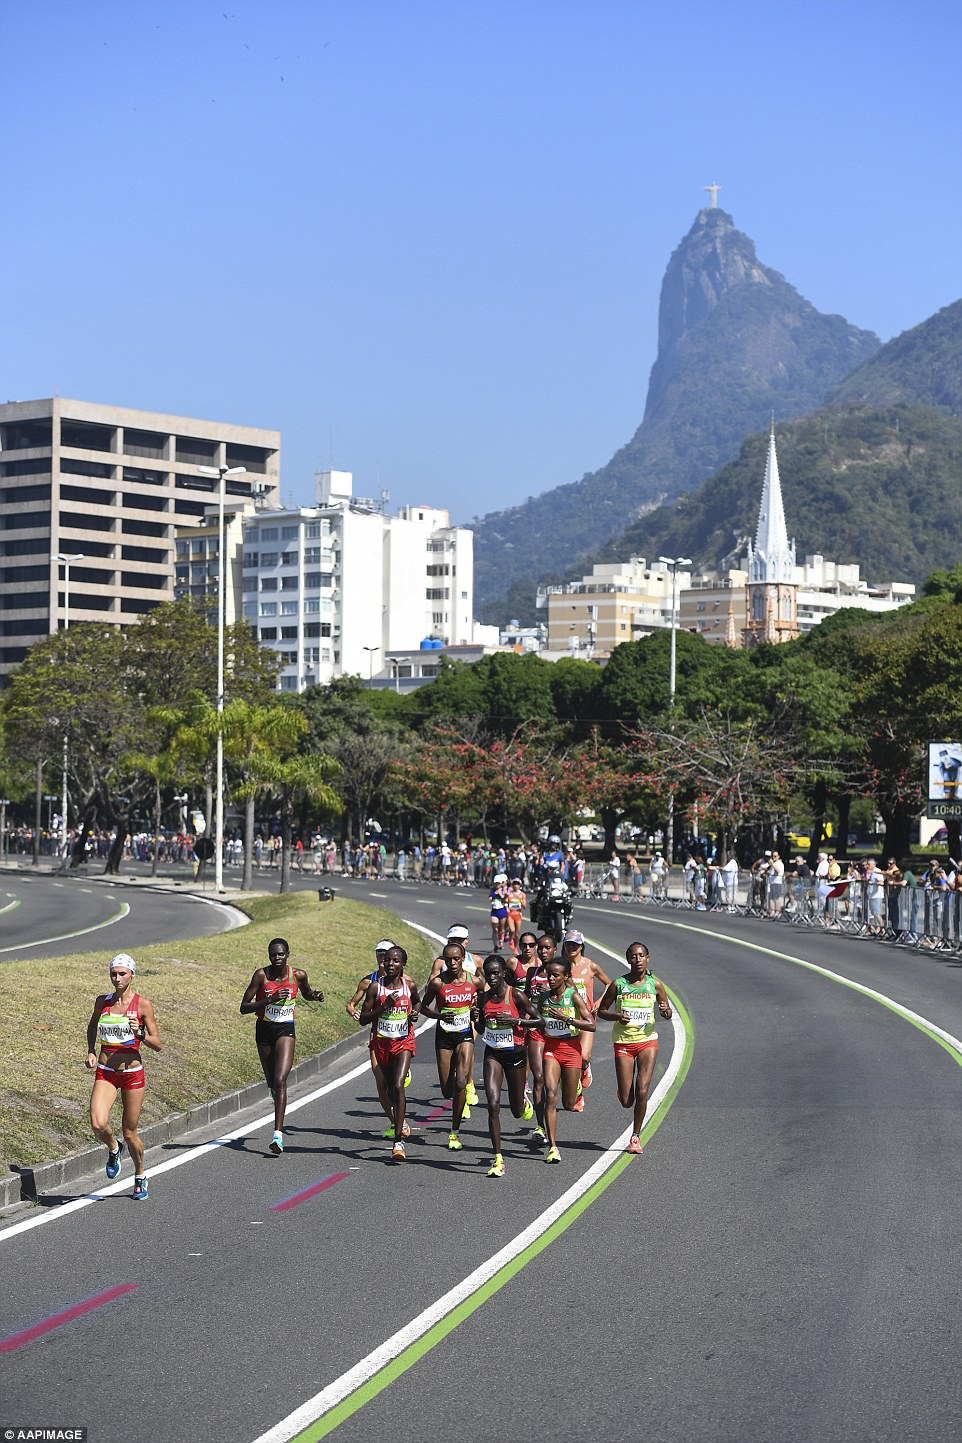 Competitors are seen running past Corcovado and the Christ the Redeemer statue during the Women's Marathon